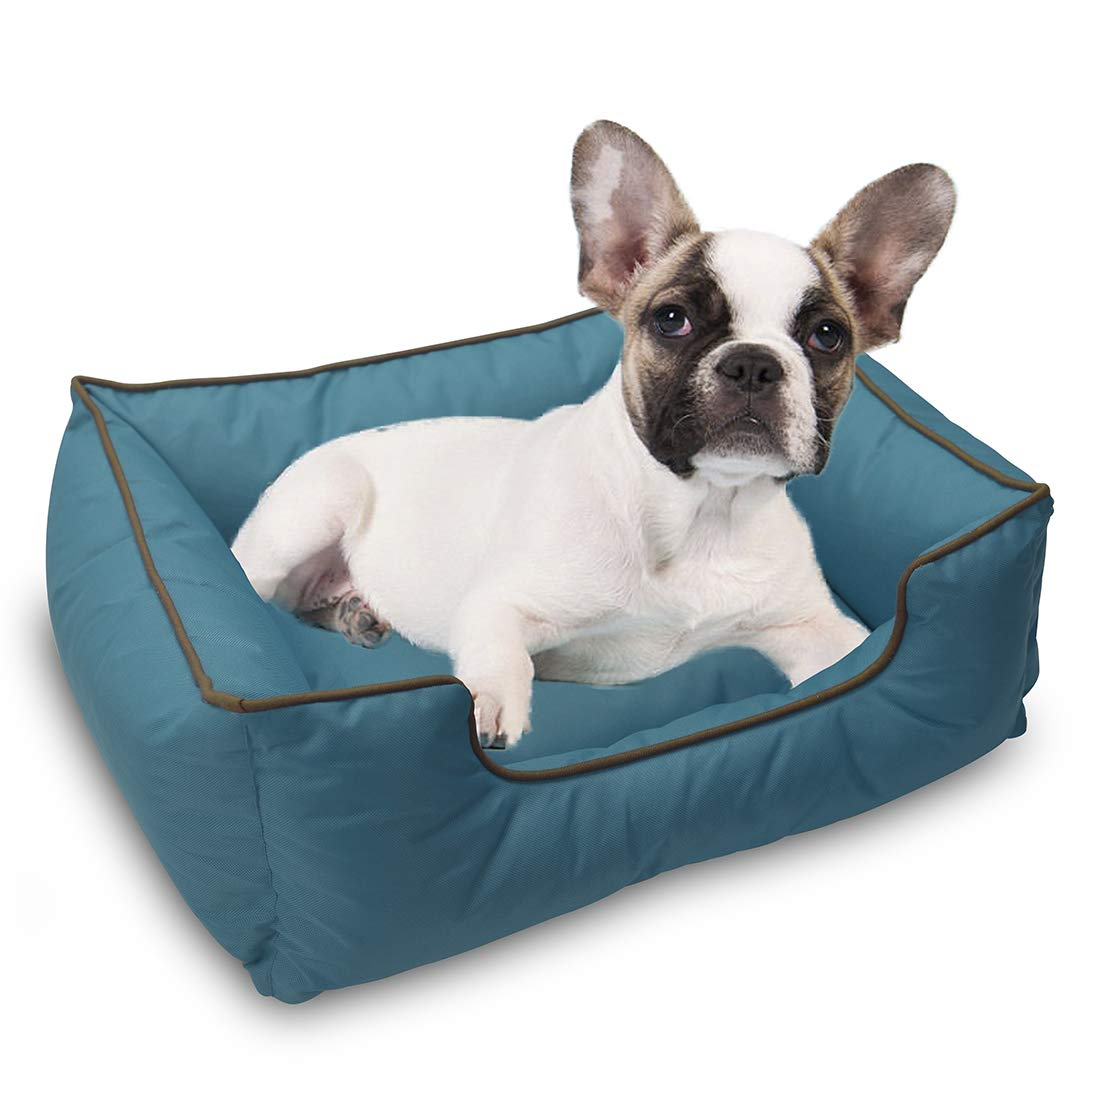 XIAOO Pet Bed for Dogs and Cats, Ultra-Soft Warm Pet Bed Sofa Water Resistant with Removable & Washable Cover,Up to 25lbs-Blue by XIAOO